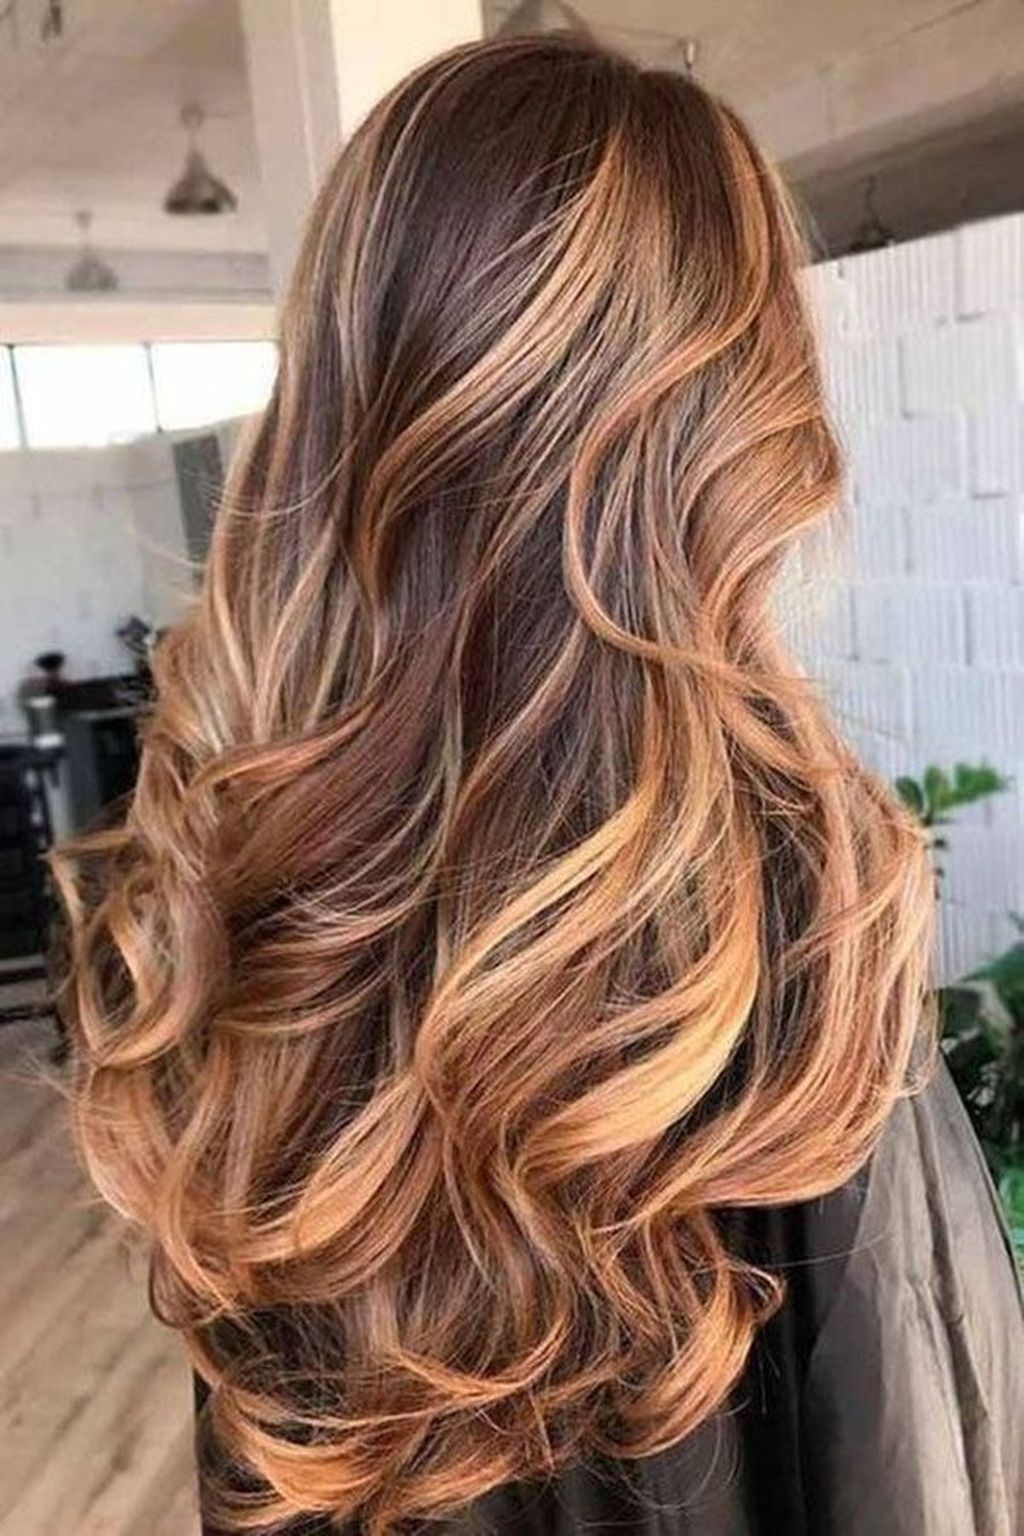 38 Unique Spring Hair Color Ideas For Brunettes Hairstyles